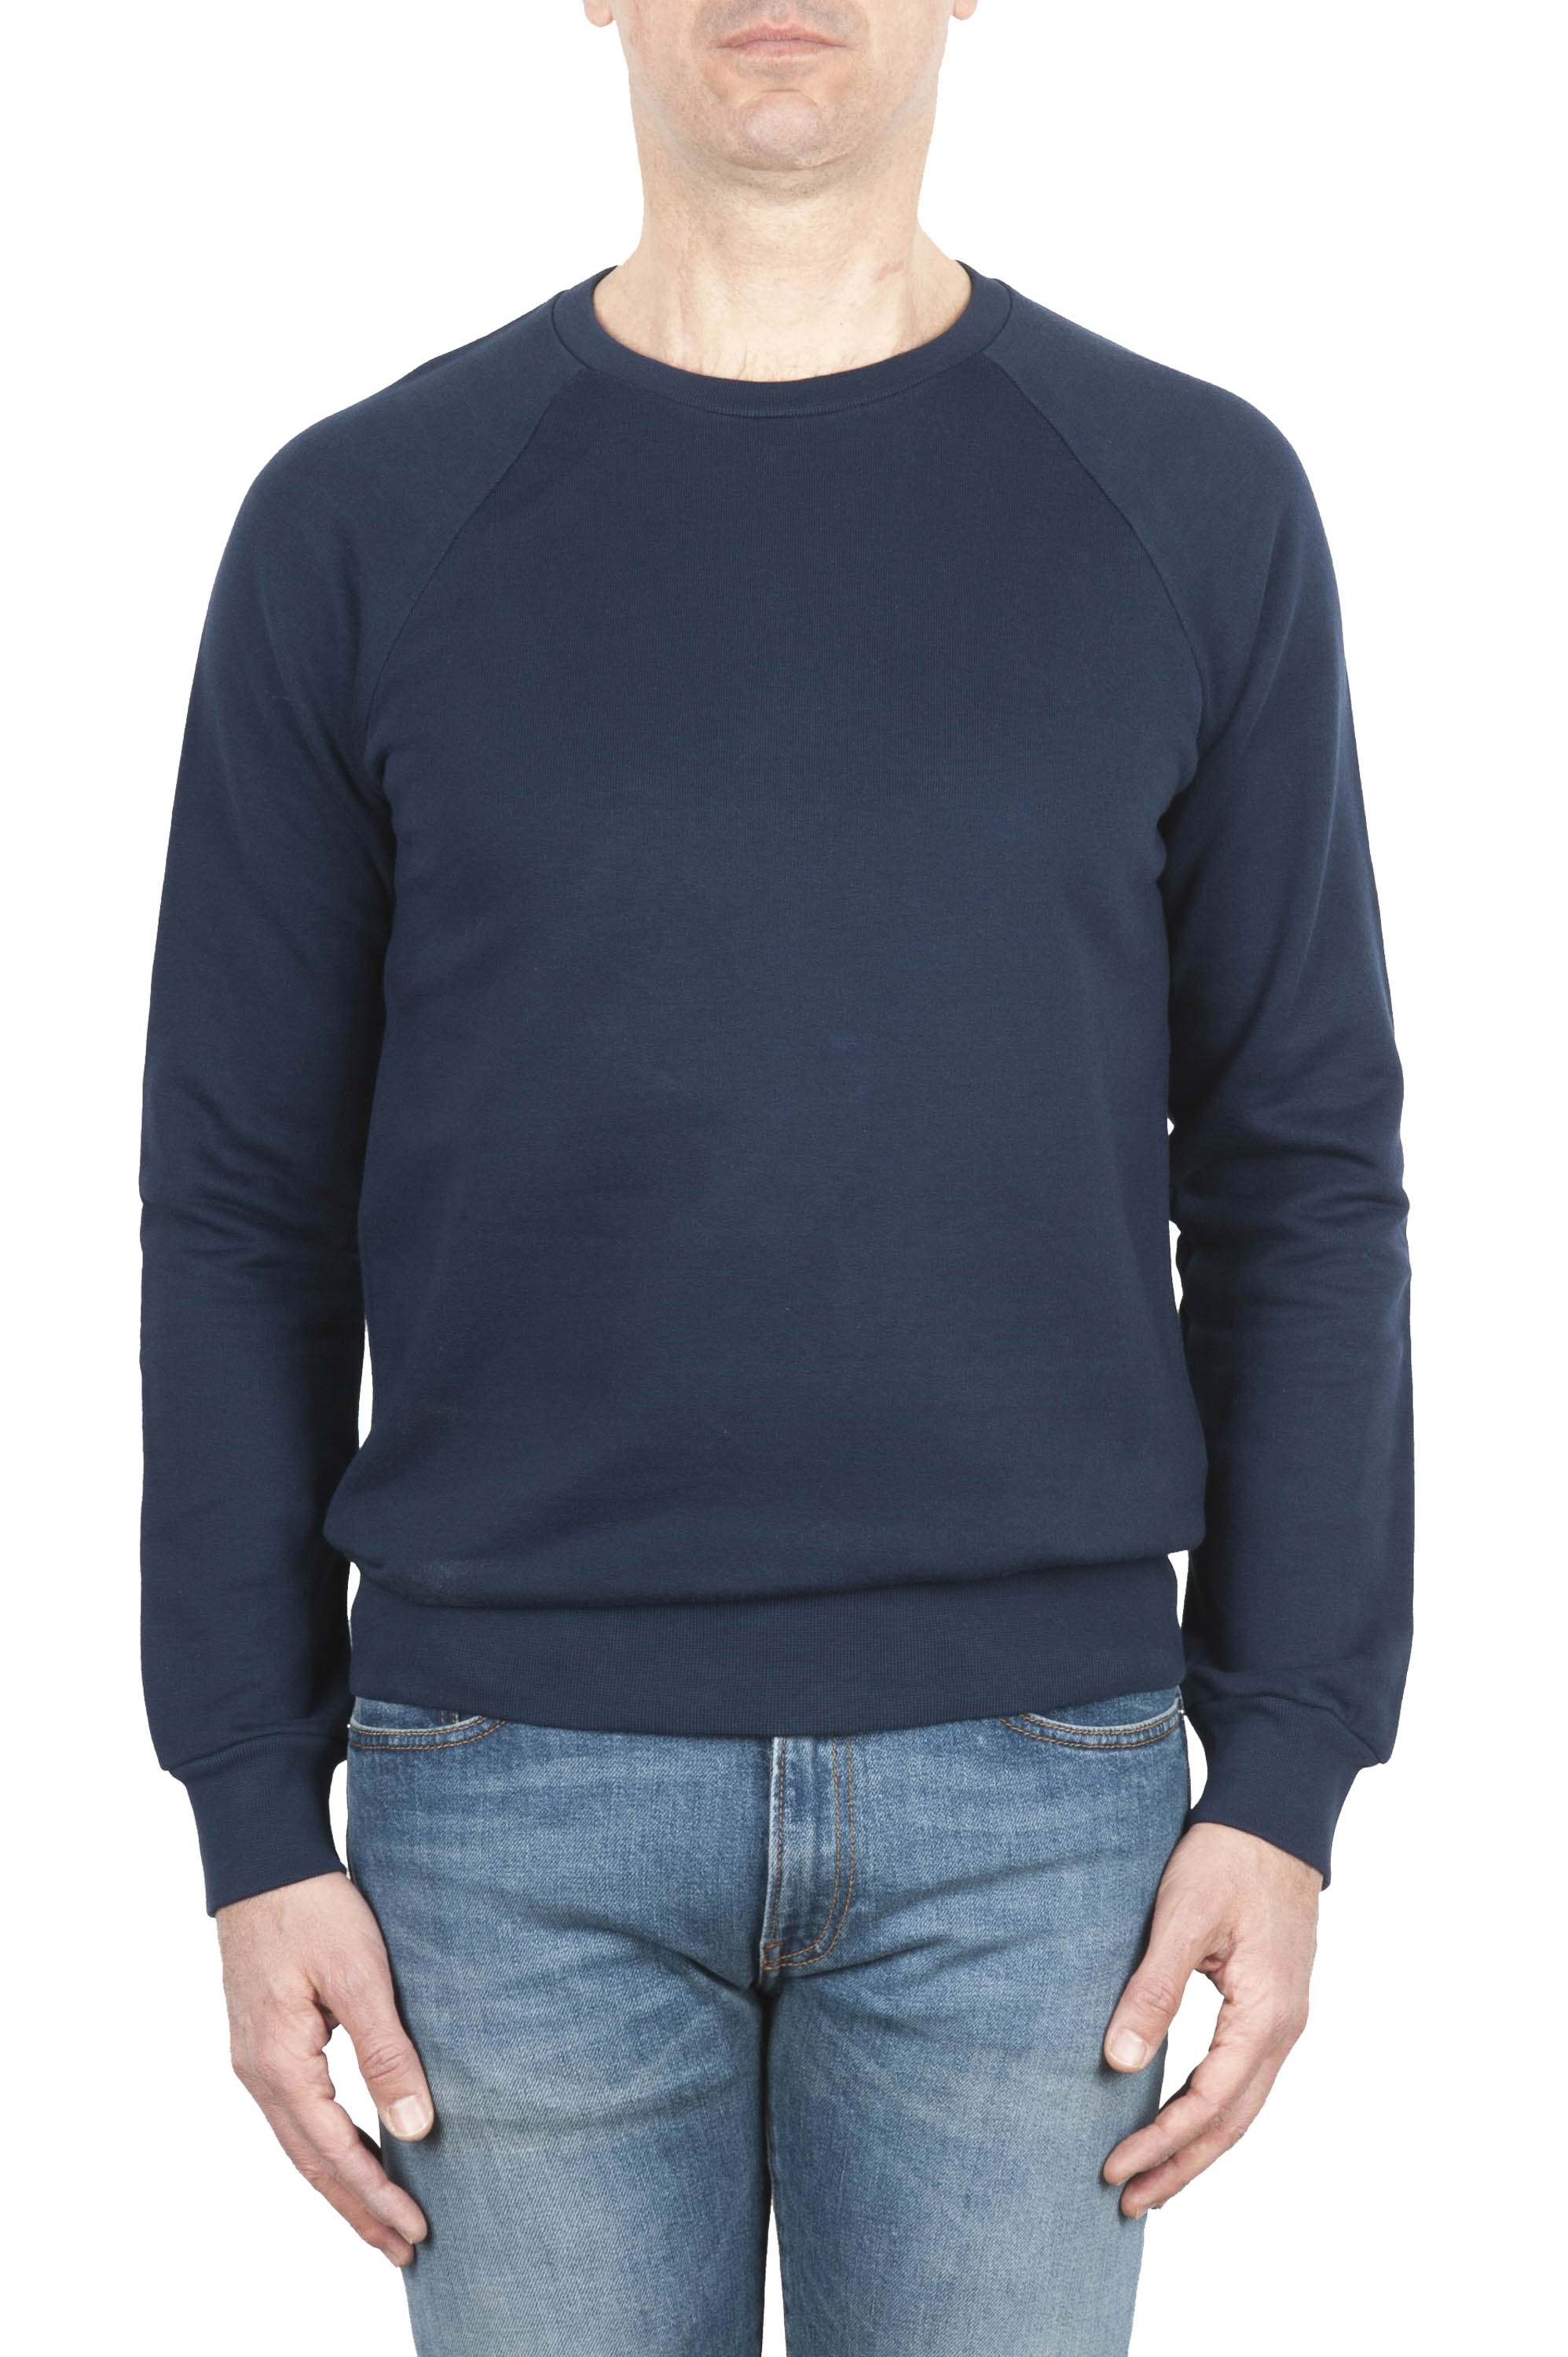 SBU 01770 Crewneck blue cotton sweatshirt 01